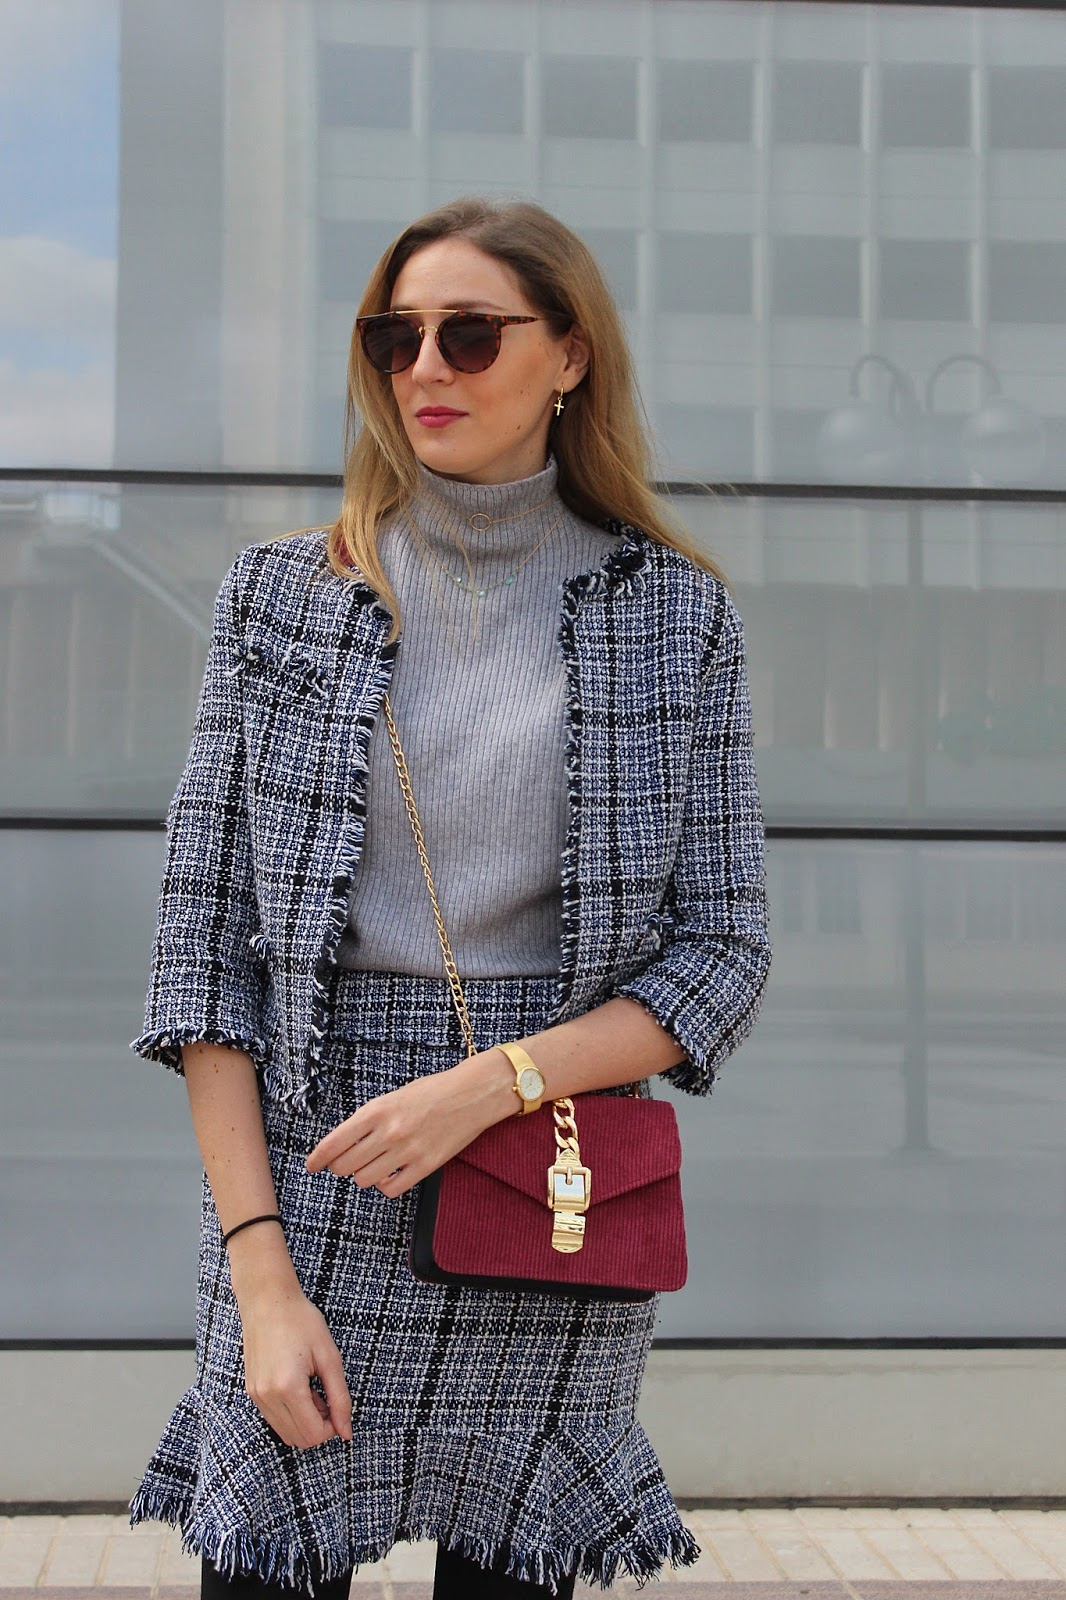 tweed-skirt-jacket-corduroy-bag-burgundy-loafers